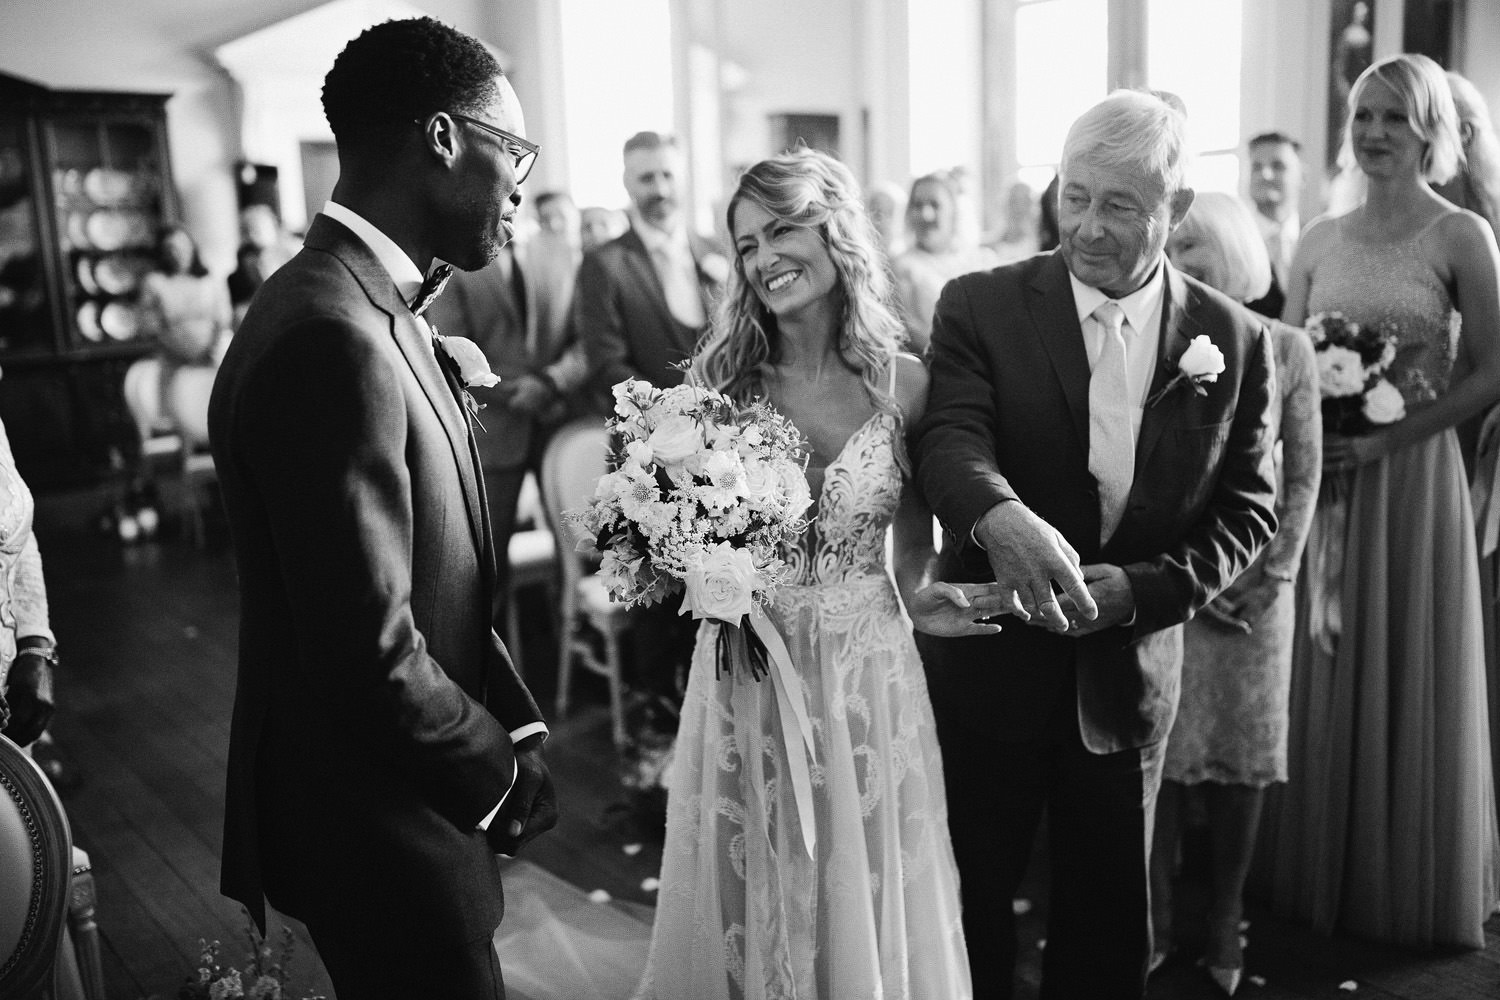 bride walked down aisle with father smiling at groom